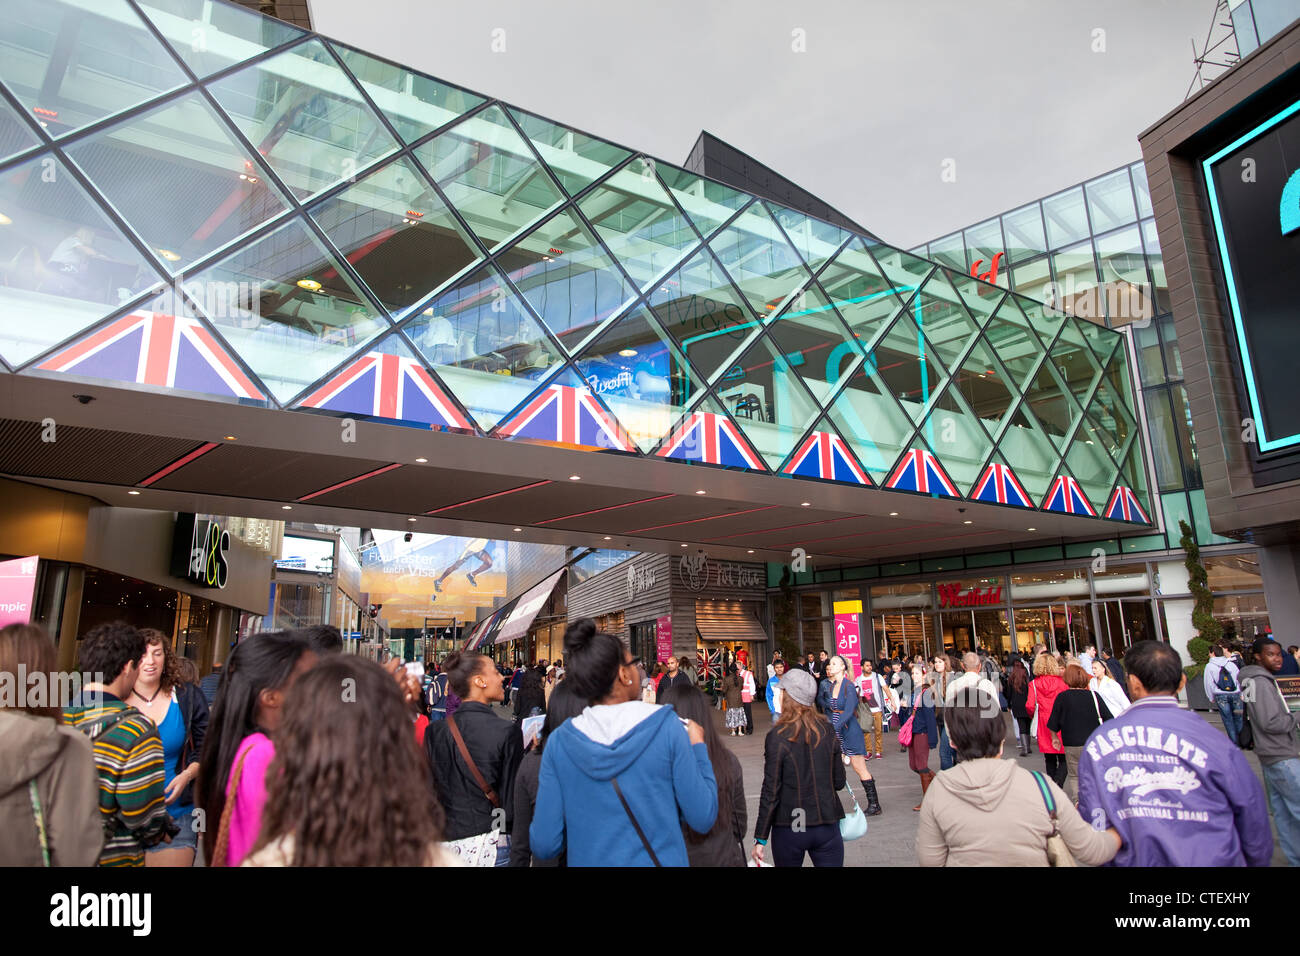 Entrance to a busy Westfield Shopping Centre, Stratford, East London, UK Stock Photo